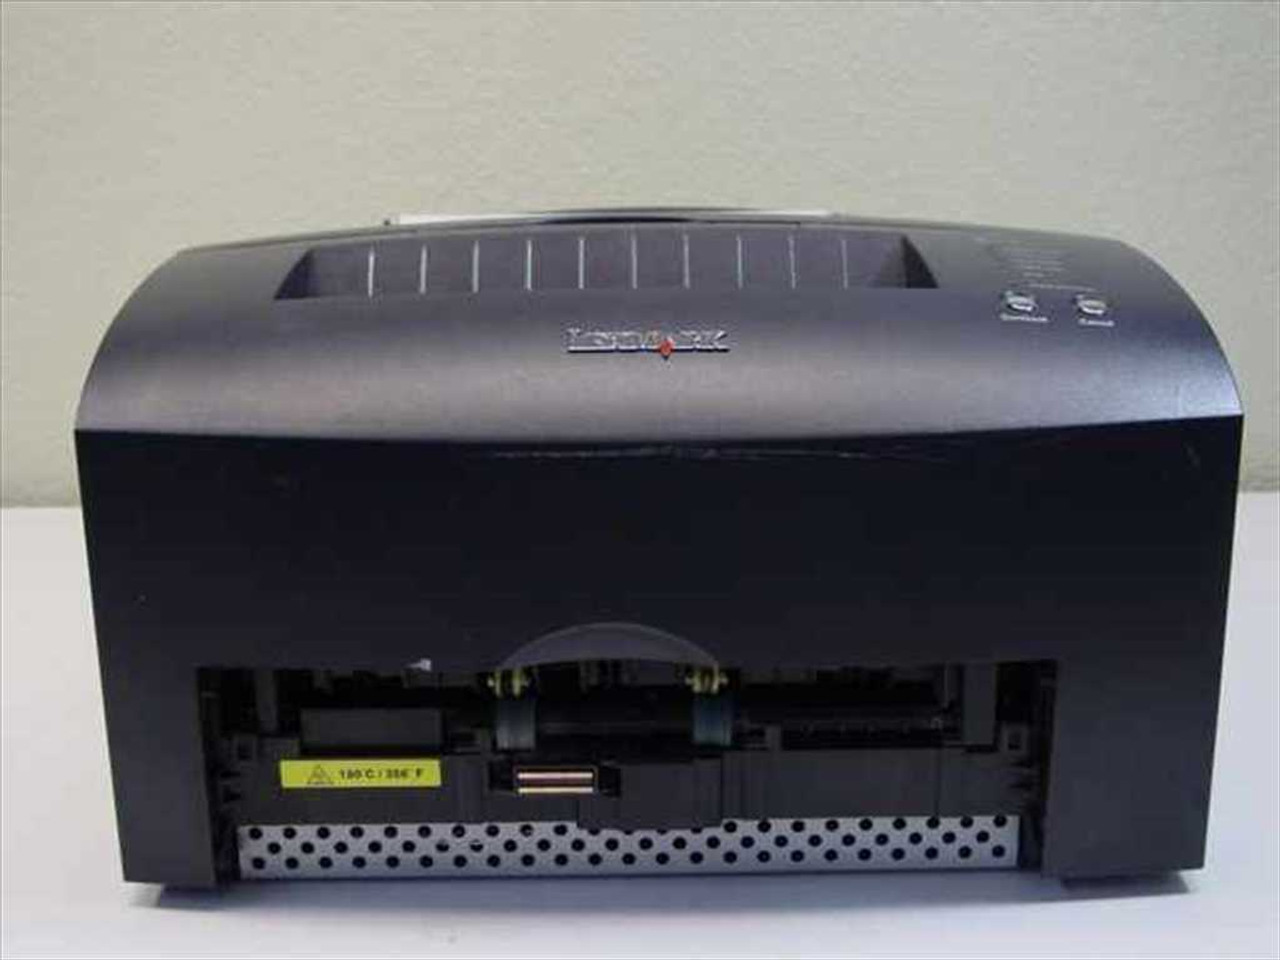 LEXMARK 4500 DRIVERS FOR MAC